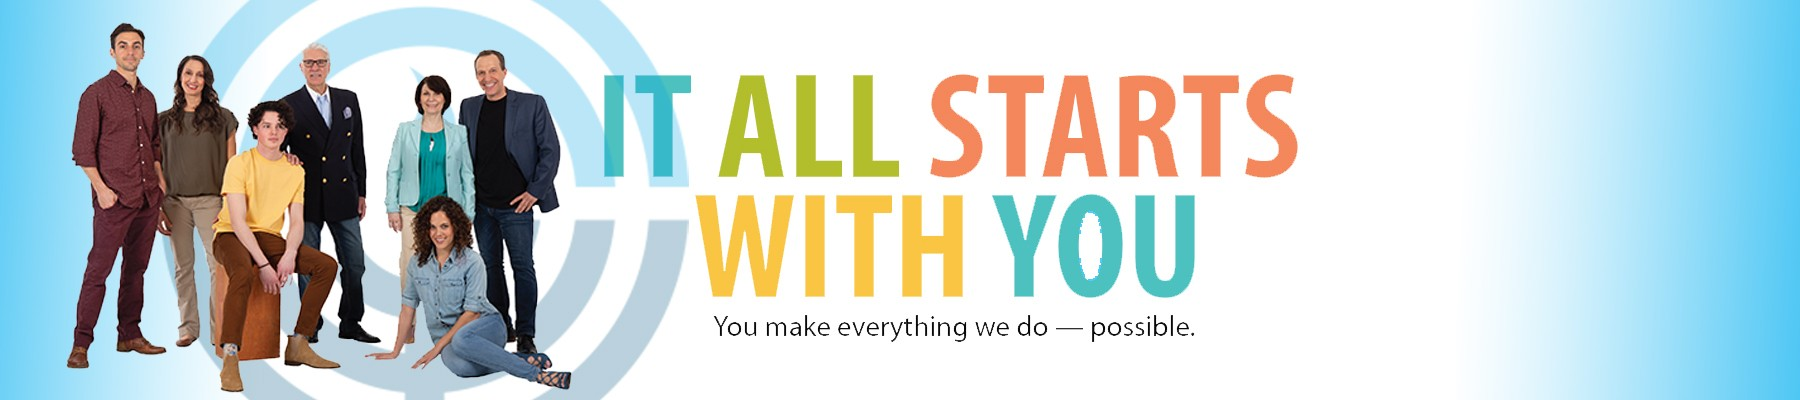 All Starts With You v2.jpg